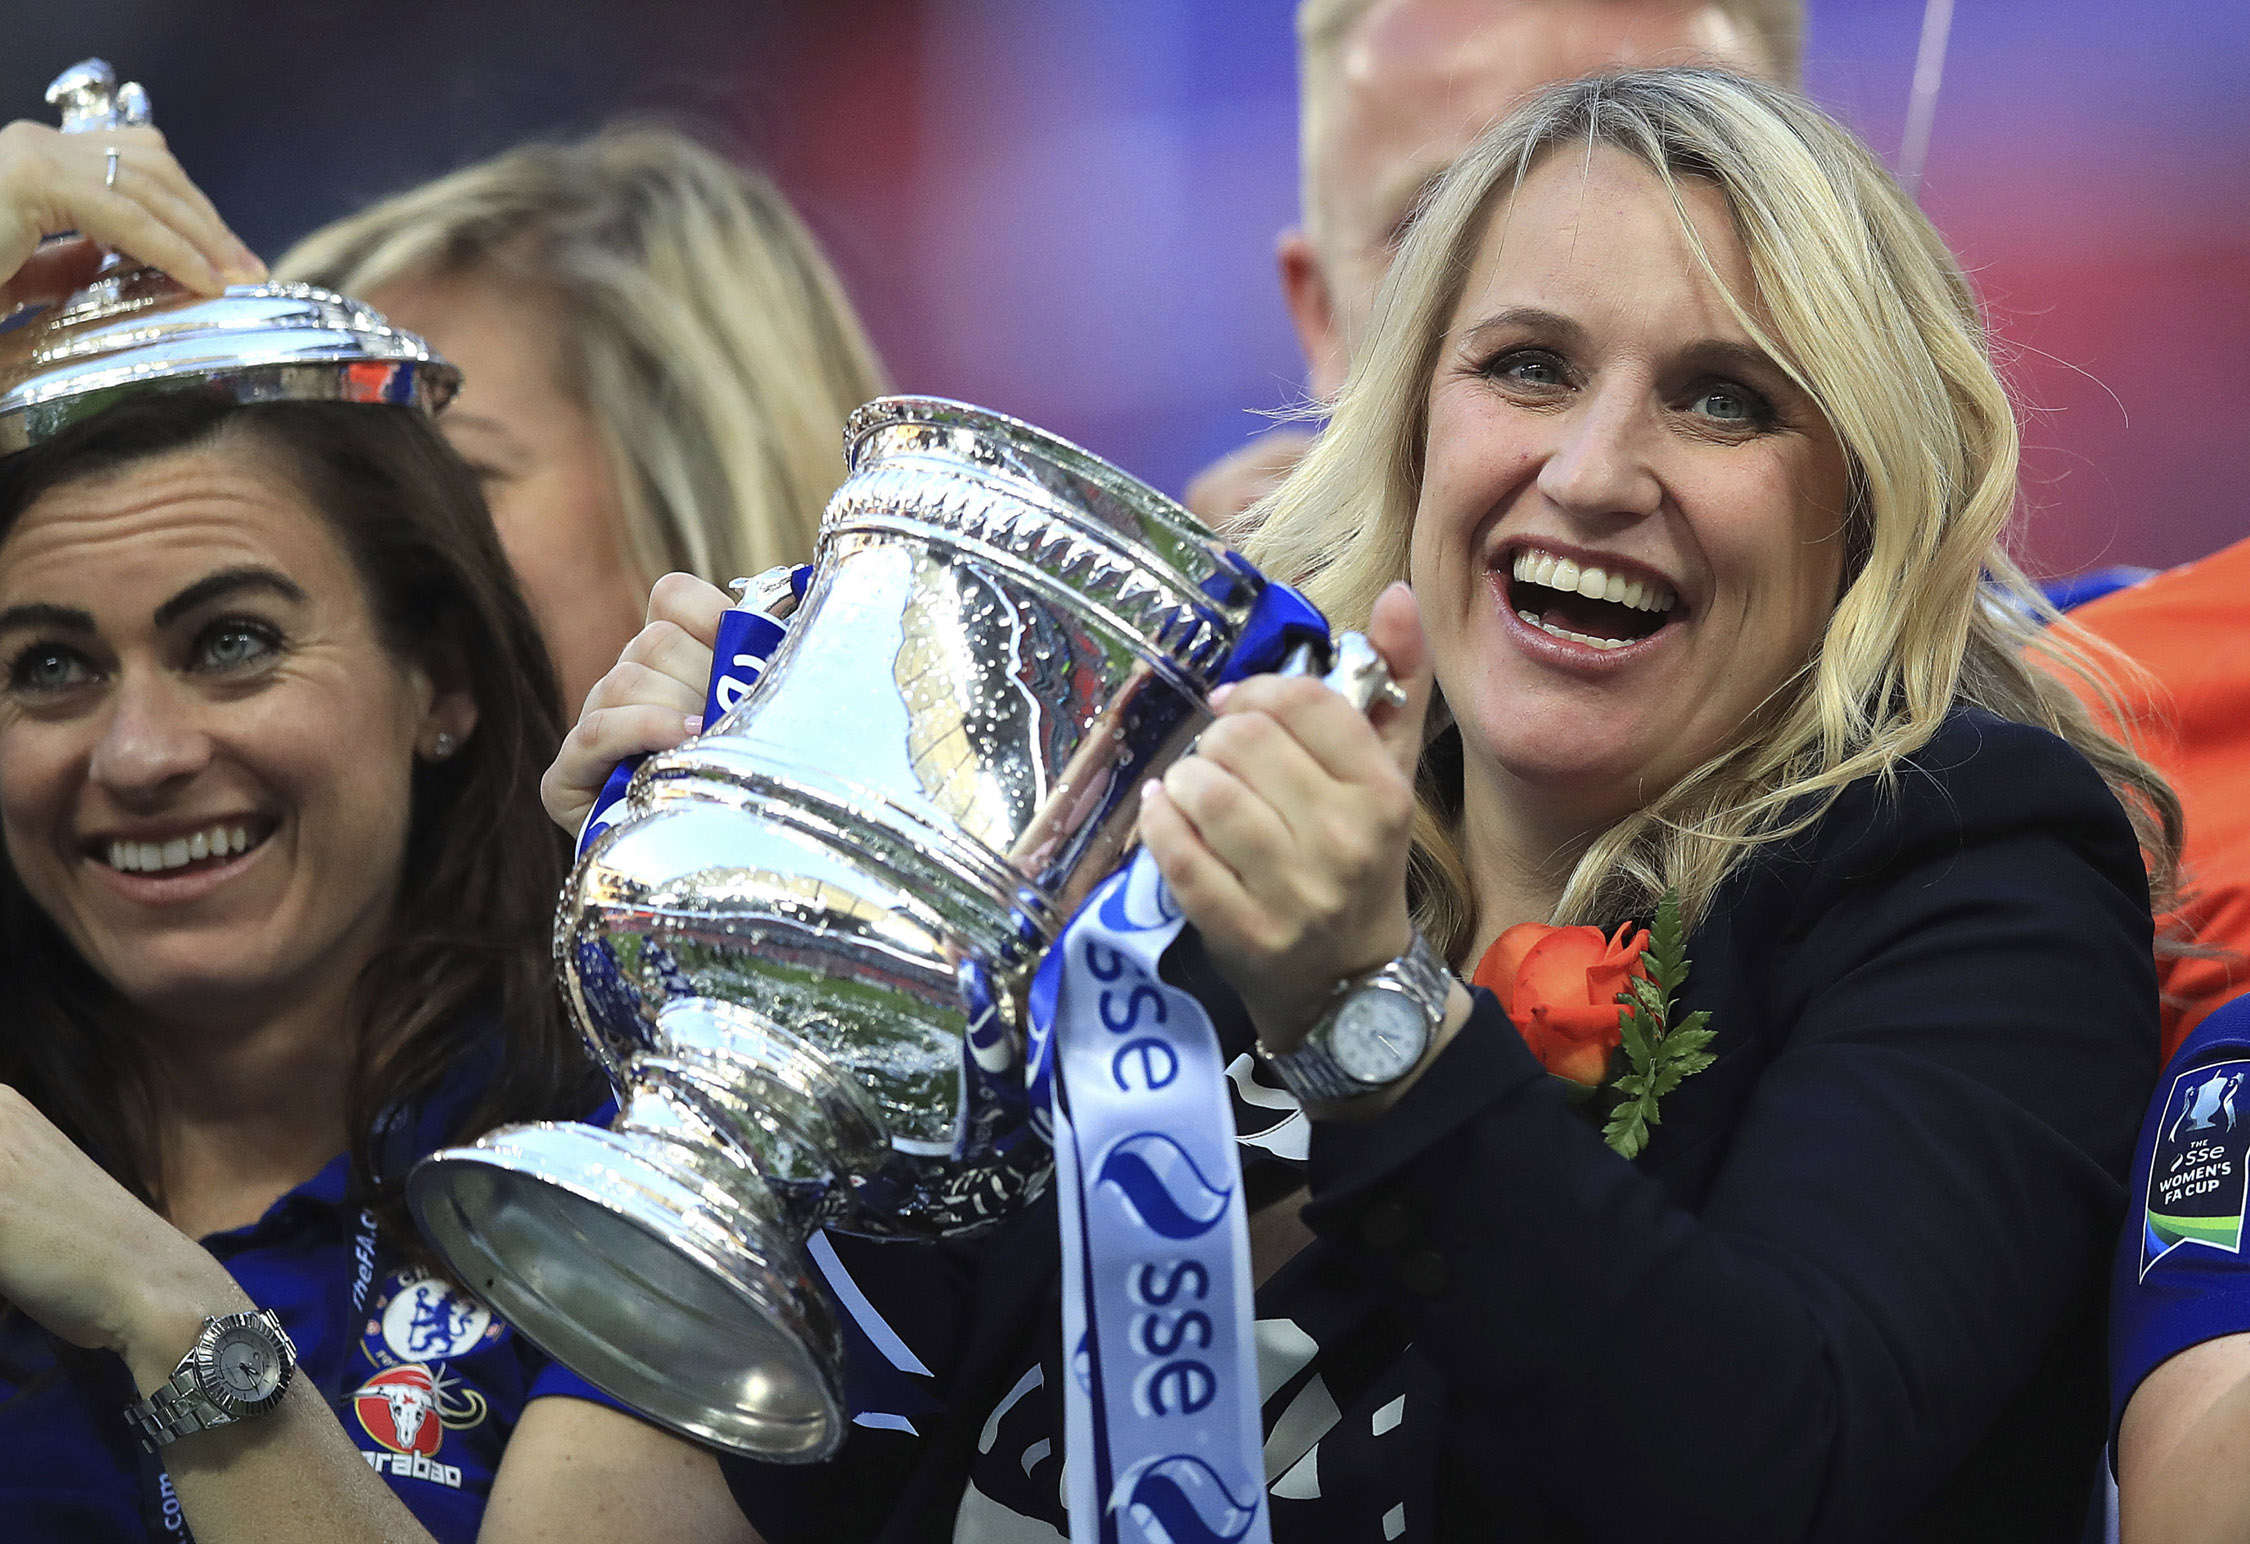 Chelsea Ladies manager Emma Hayes, right, celebrates with the trophy after the final whistle after beating Arsenal Women's team during the Women's FA Cup Final at Wembley Stadium in London, could Thomas Tuchel be there later in the season?